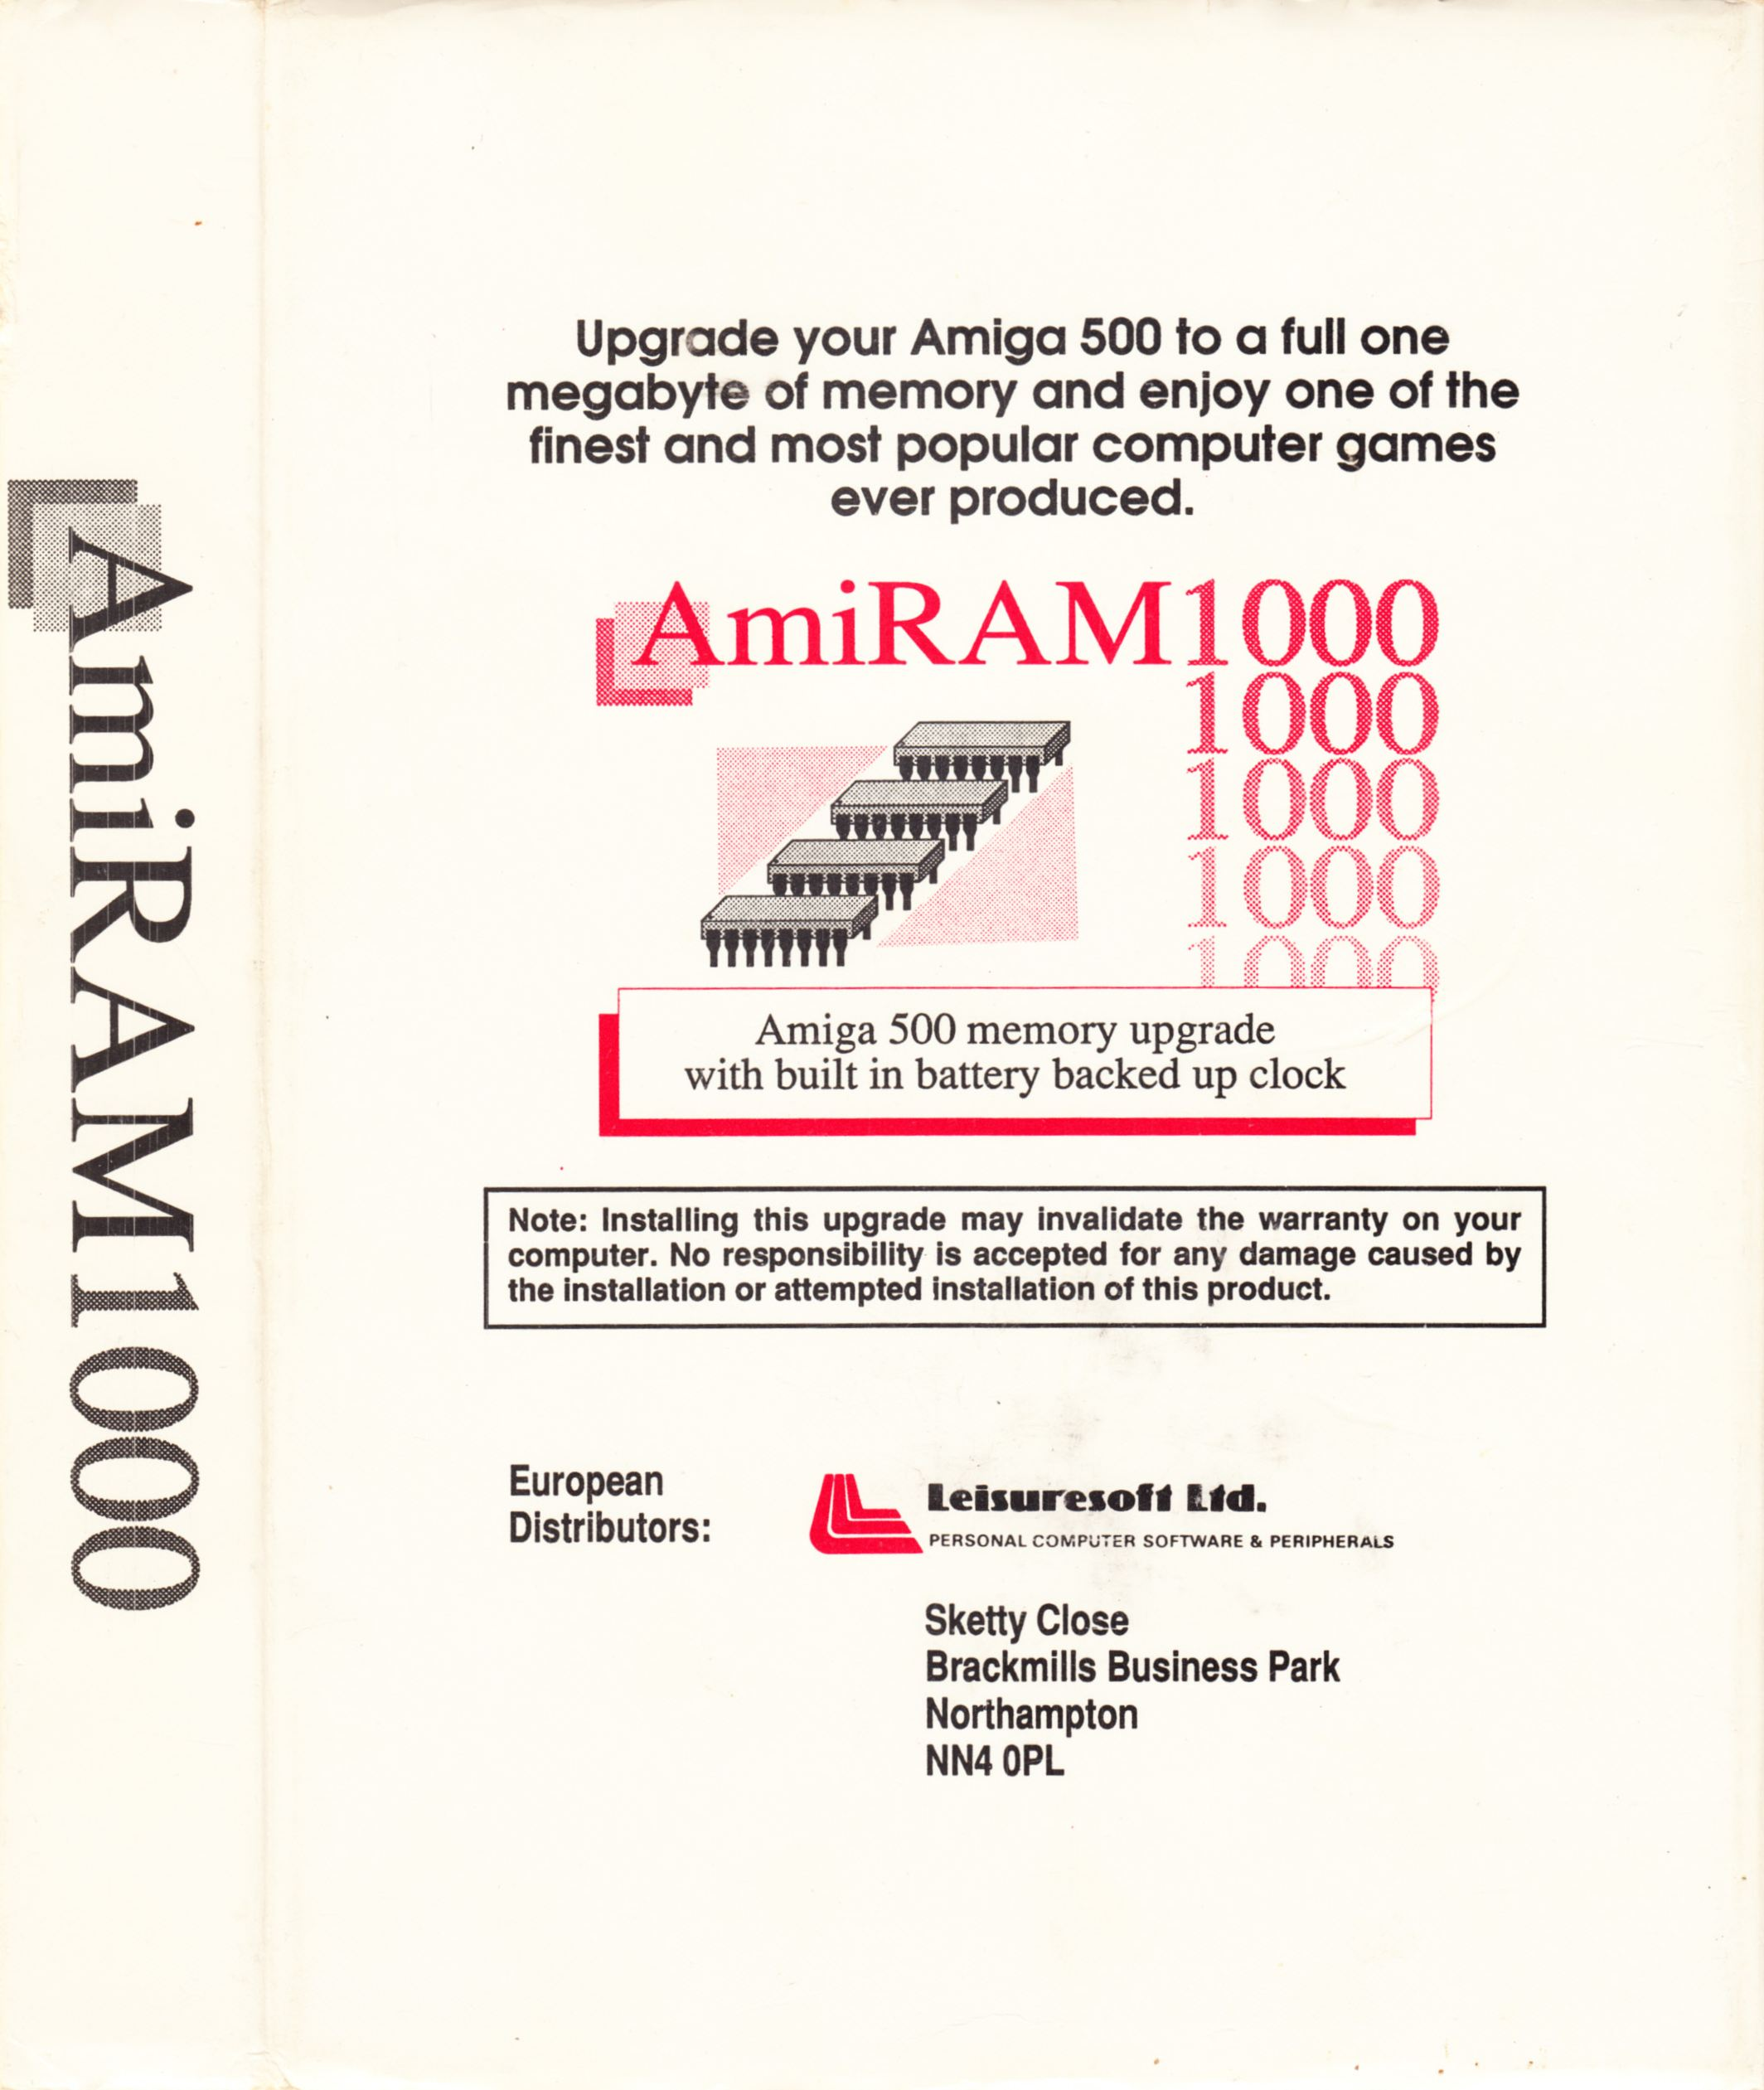 Memory Card - AmiRAM 1000 - EU - Amiga - With Clock DM - Box - Back Right - Scan